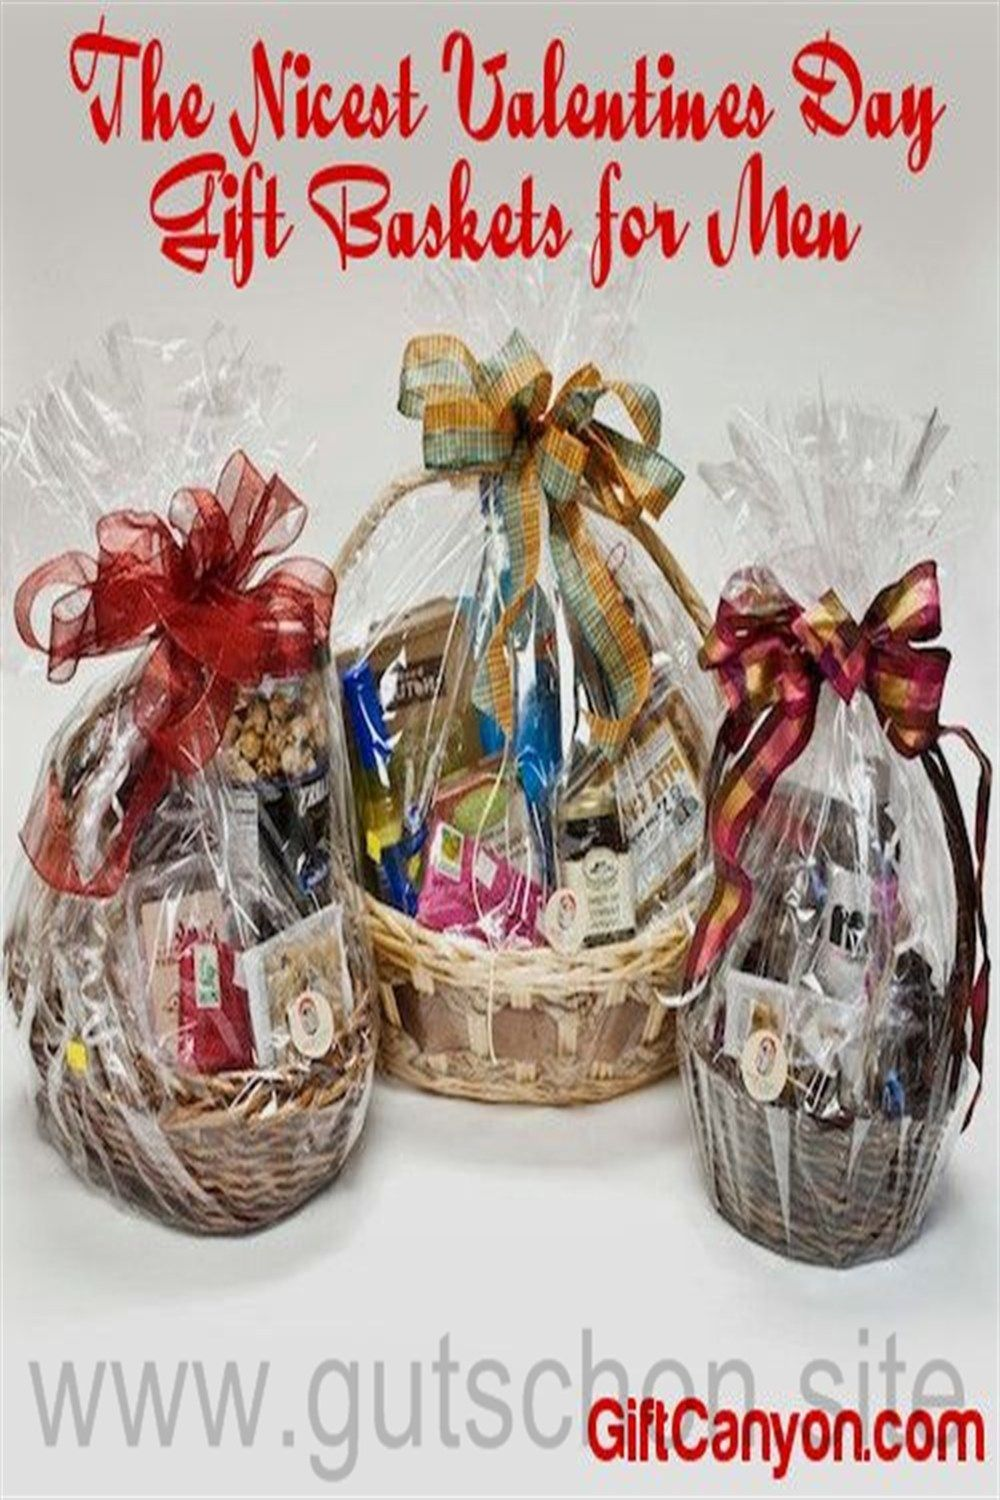 Valentines Day Ideas For Him South Africa Day Gift Valentine In 2020 Valentine S Day Gift Baskets Gift Baskets For Him Valentines Day Baskets